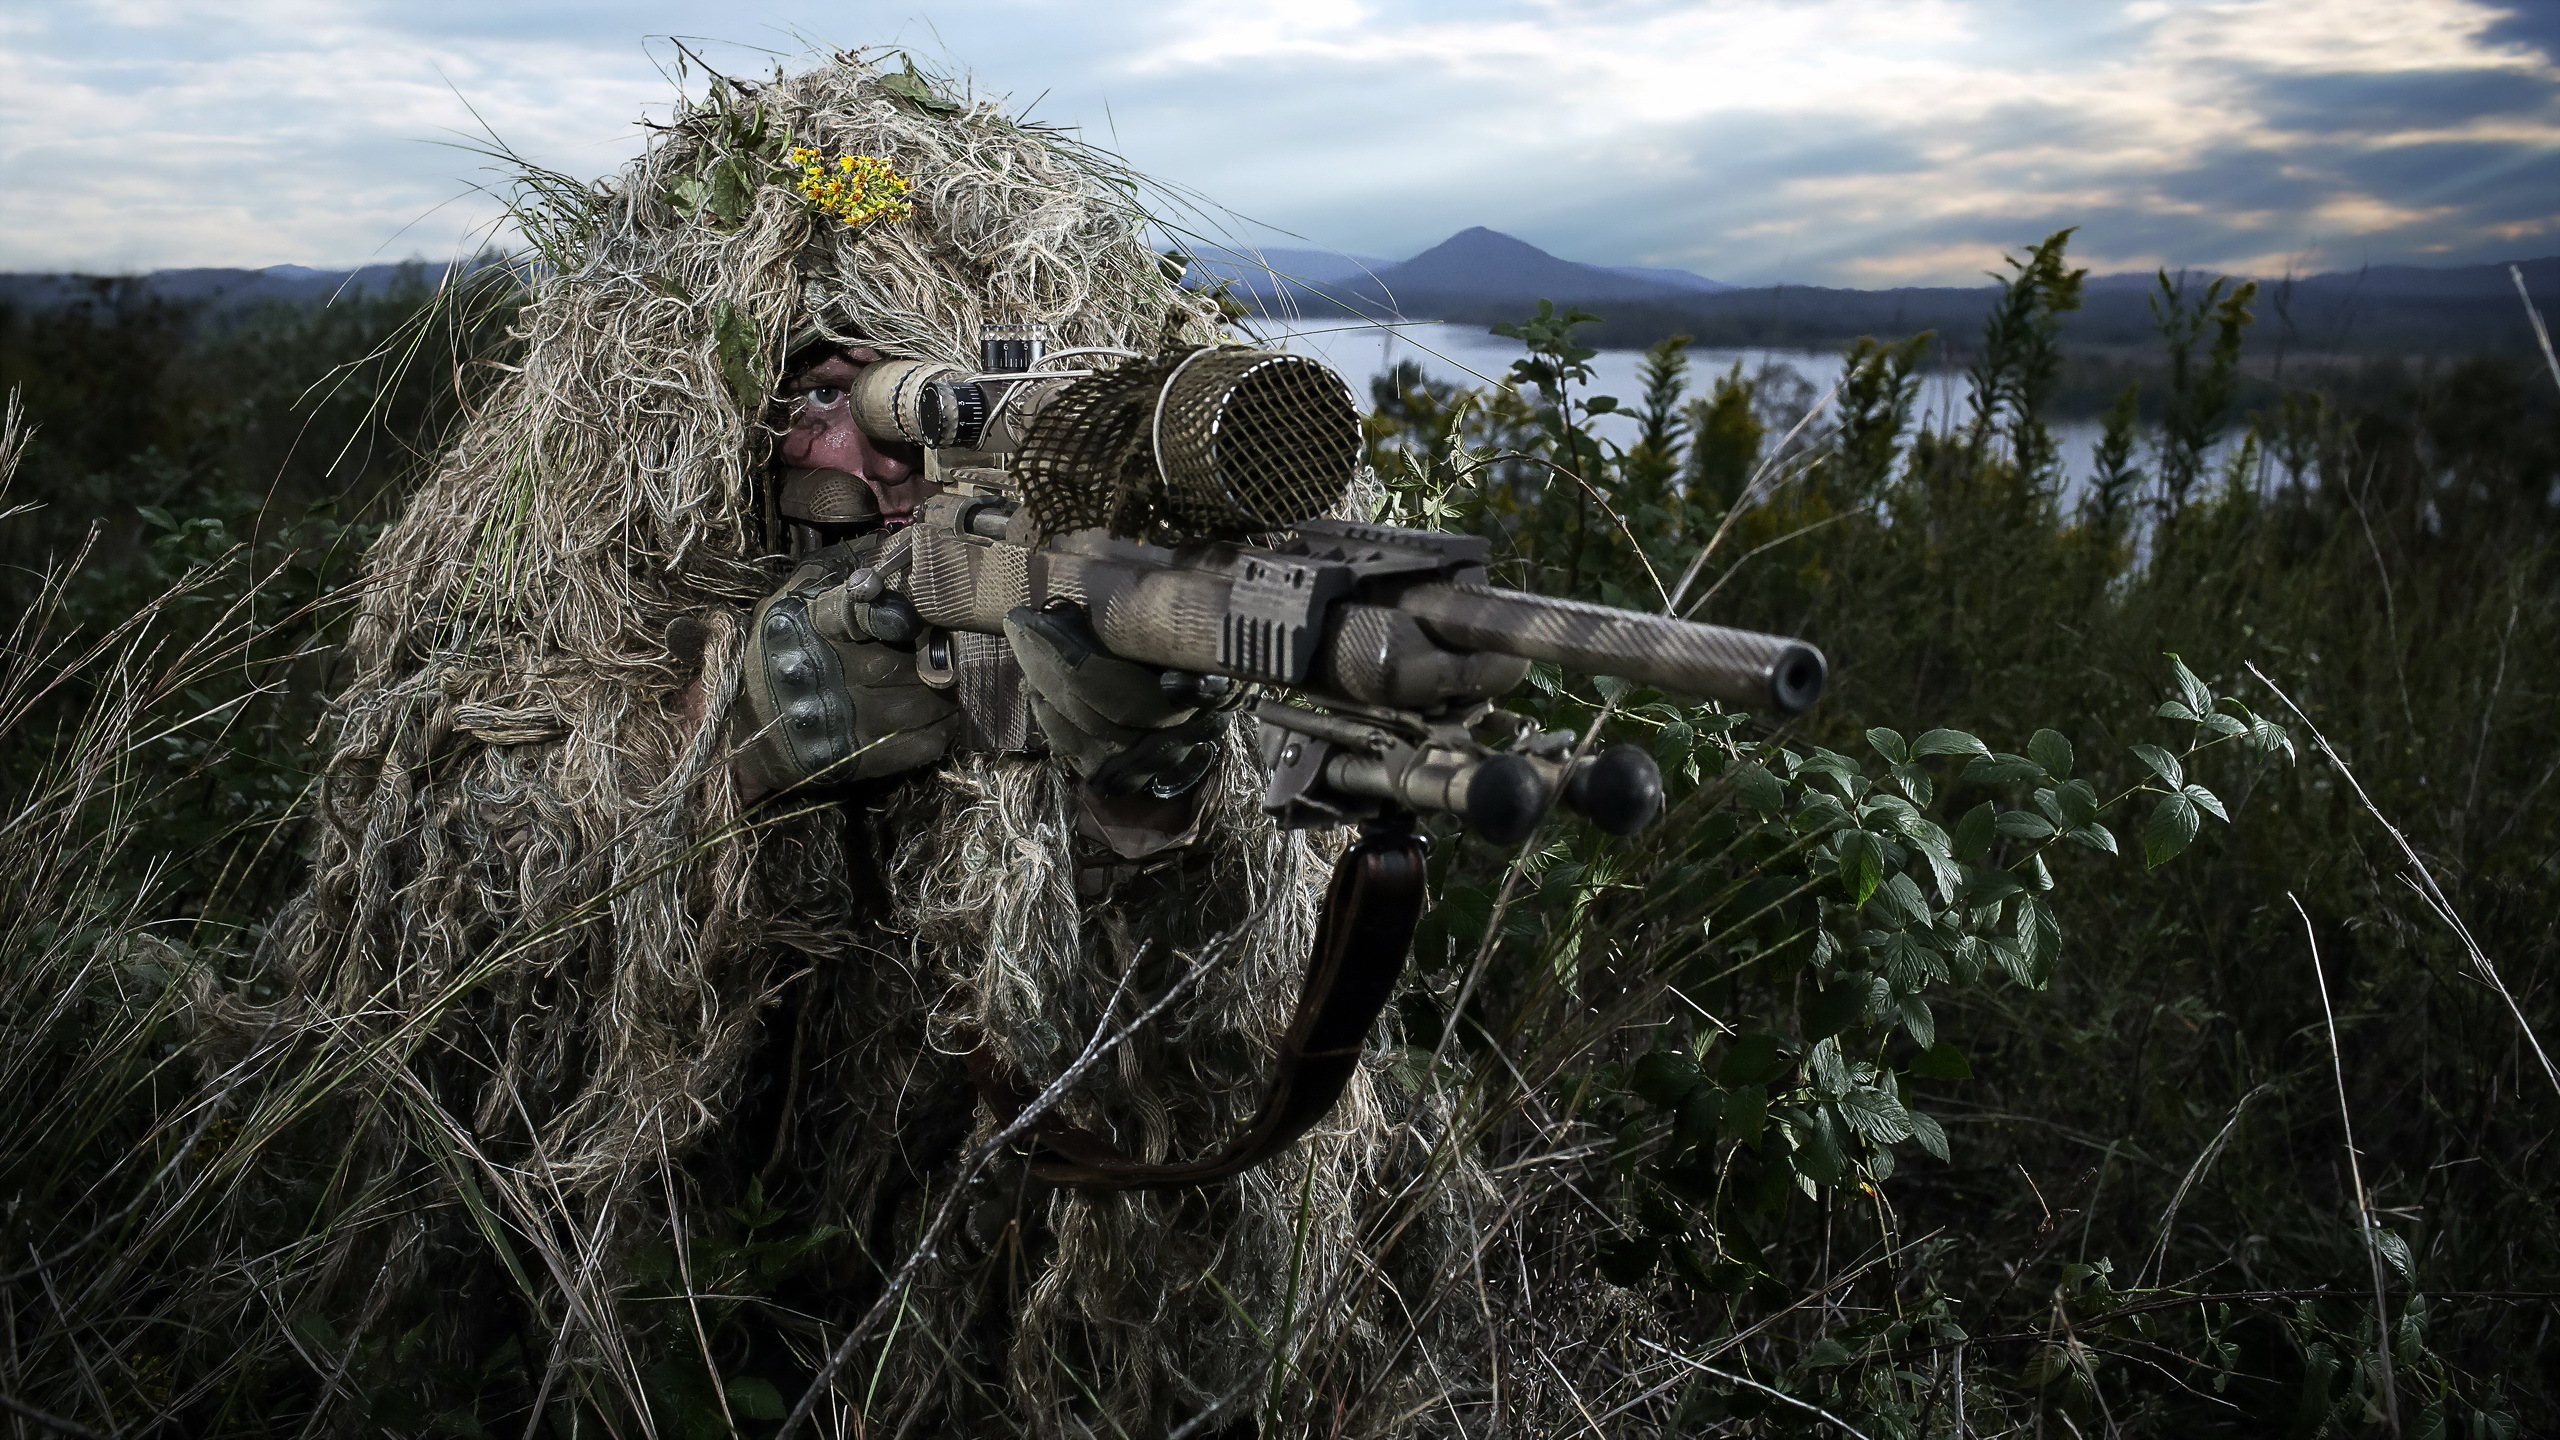 Sniper Wallpaper soldier weapon Wallpapers 2560x1440